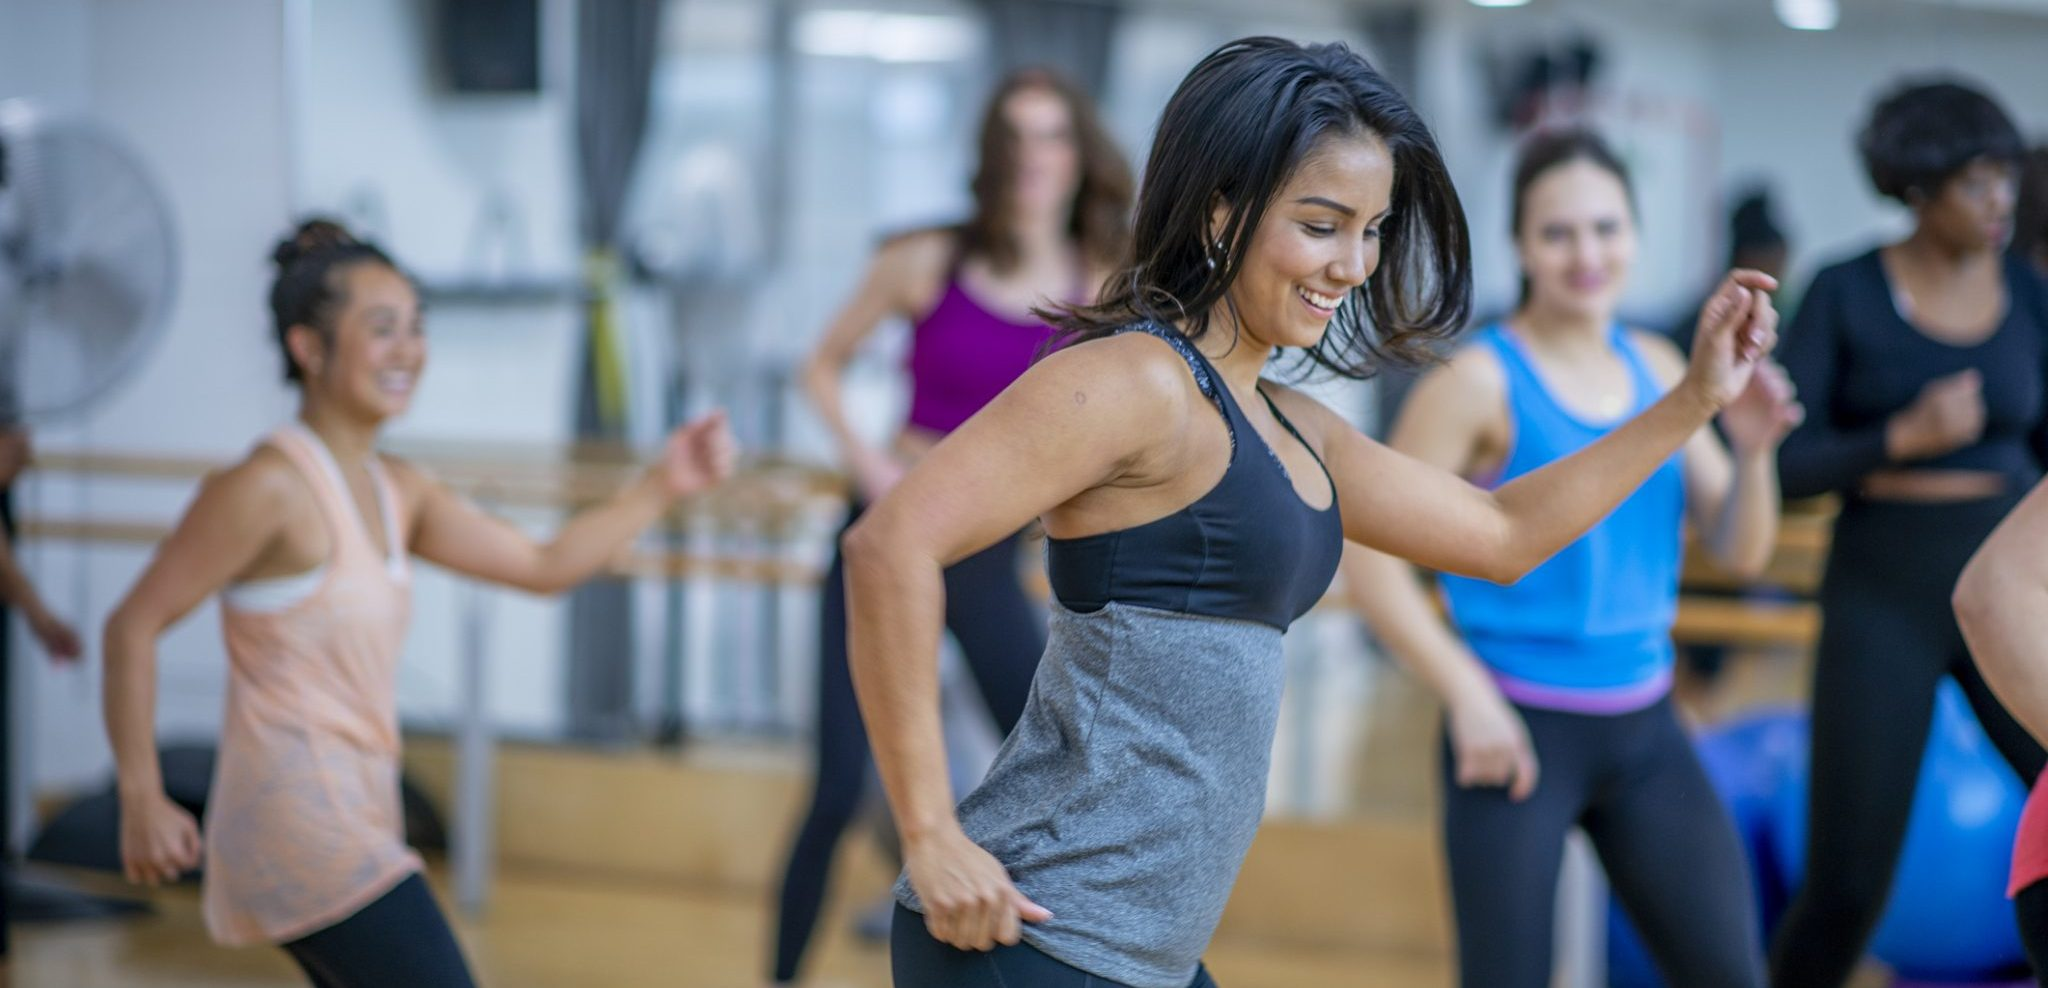 3 Great Reasons to Dance Your Way to Fitness